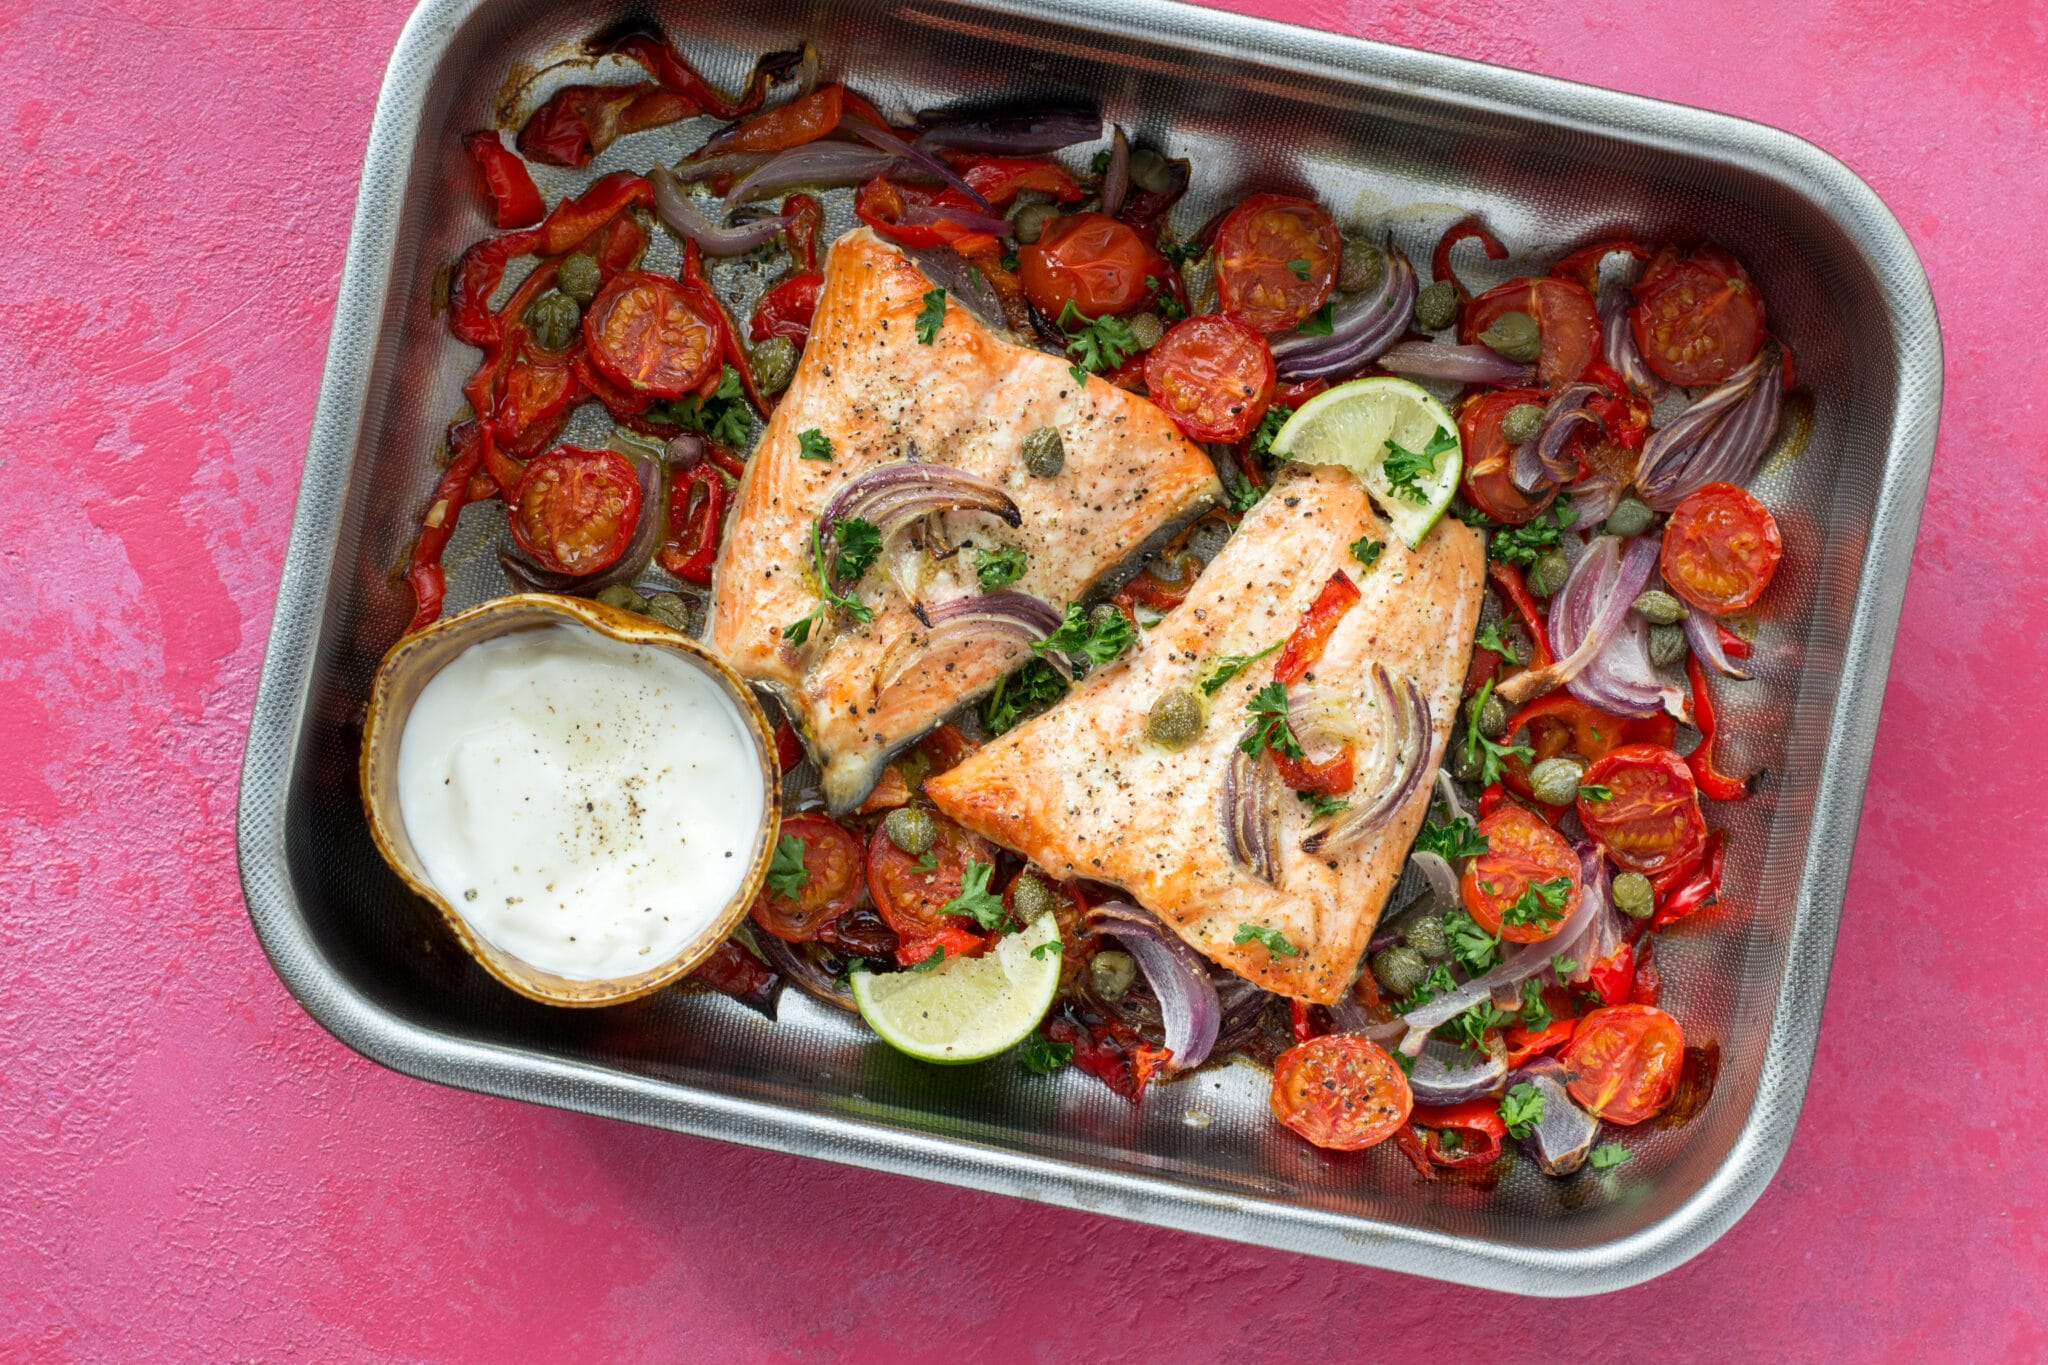 Salmon and vegetables cooked in a baking tray